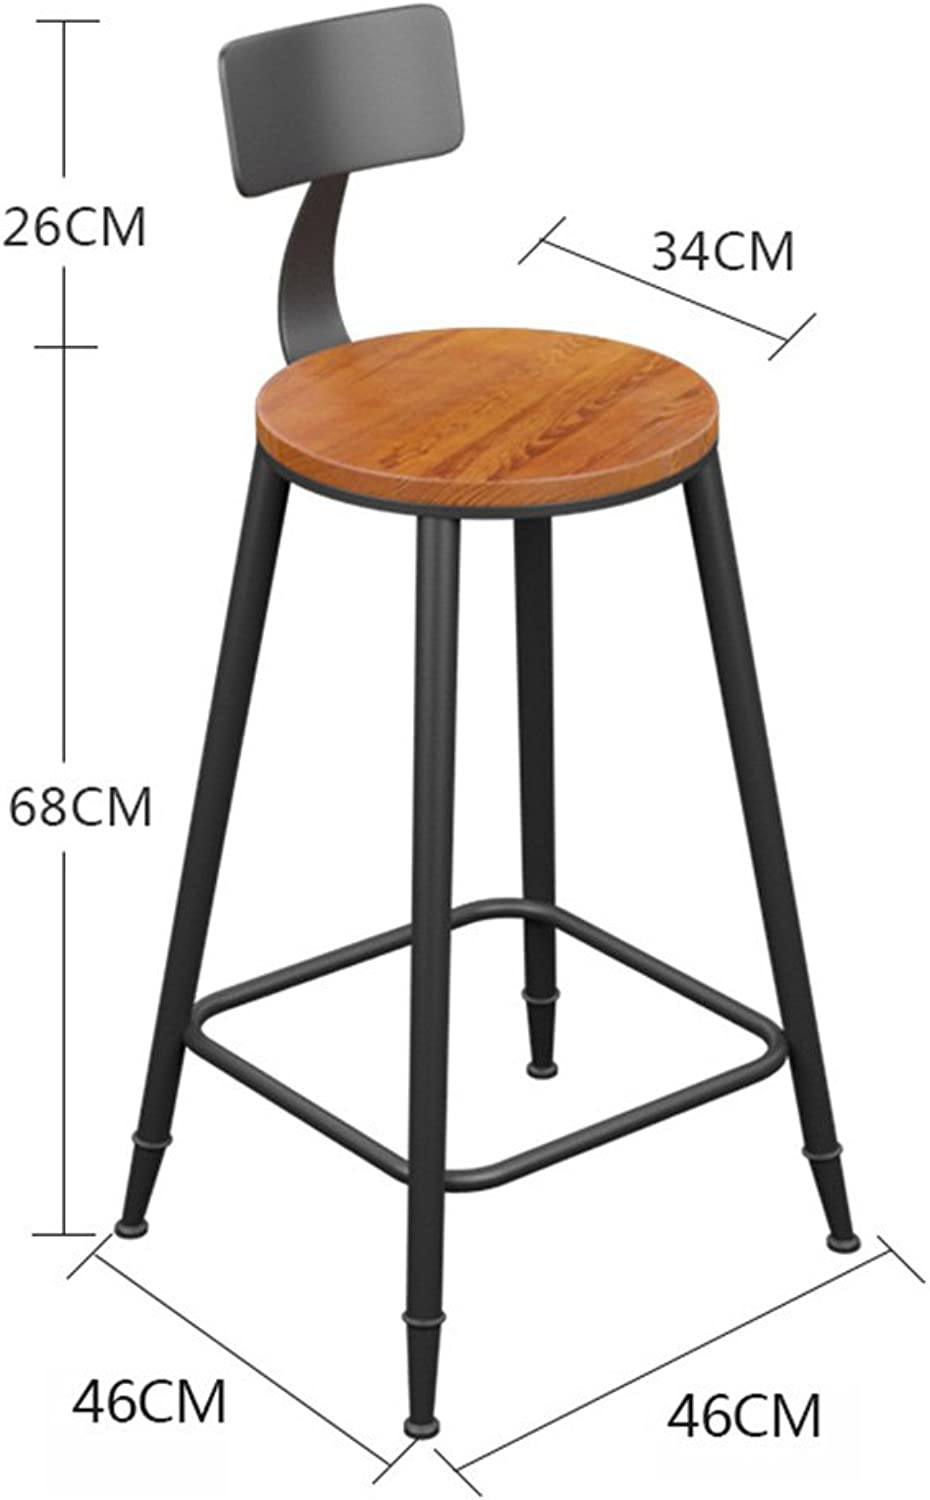 LHA Barstools Wrought Iron Solid Wood Bar Chair Bar Stool High Chair Front Desk Chair Bar Furniture (Size   68CM)